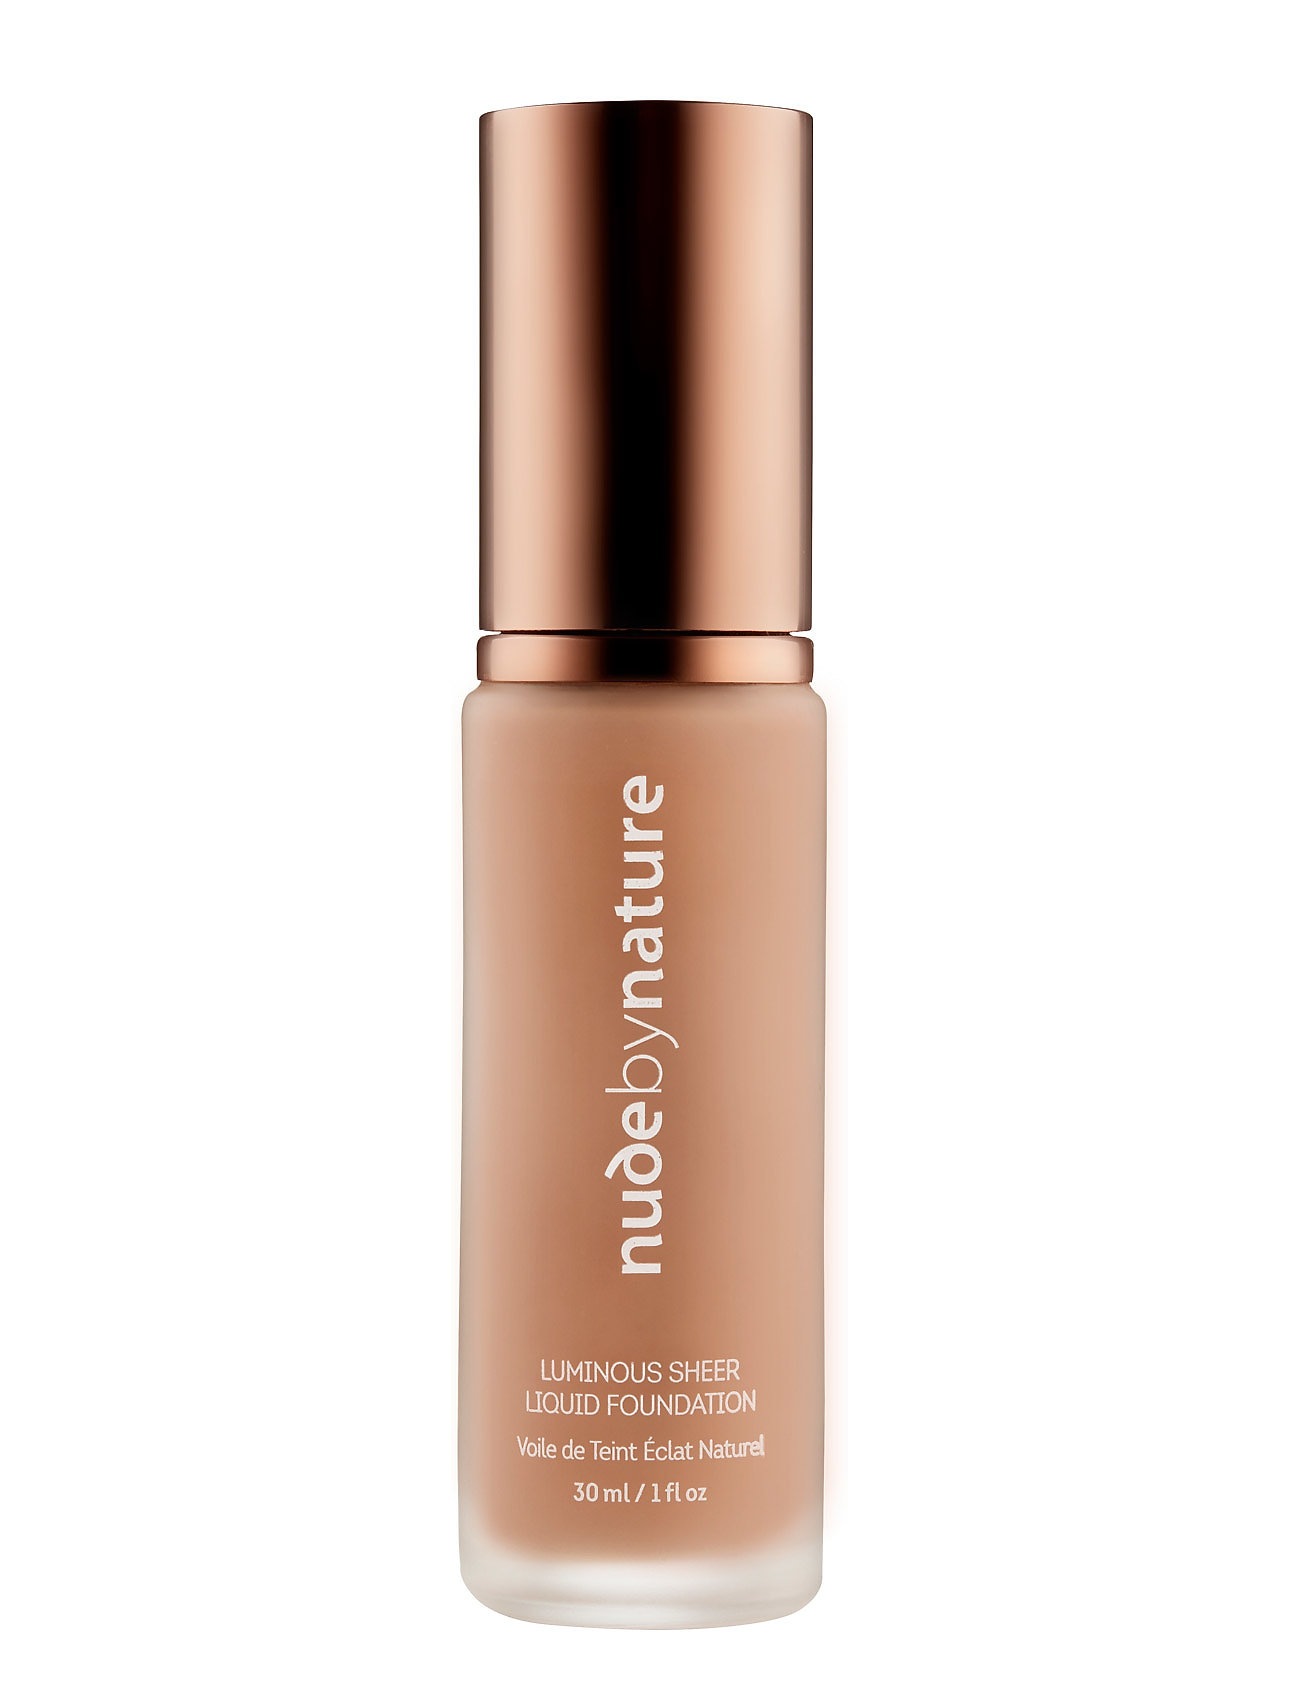 Image of Luminous Sheer Liquid Foundation N2 Warm Nude Foundation Makeup Nude By Nature (3406135509)